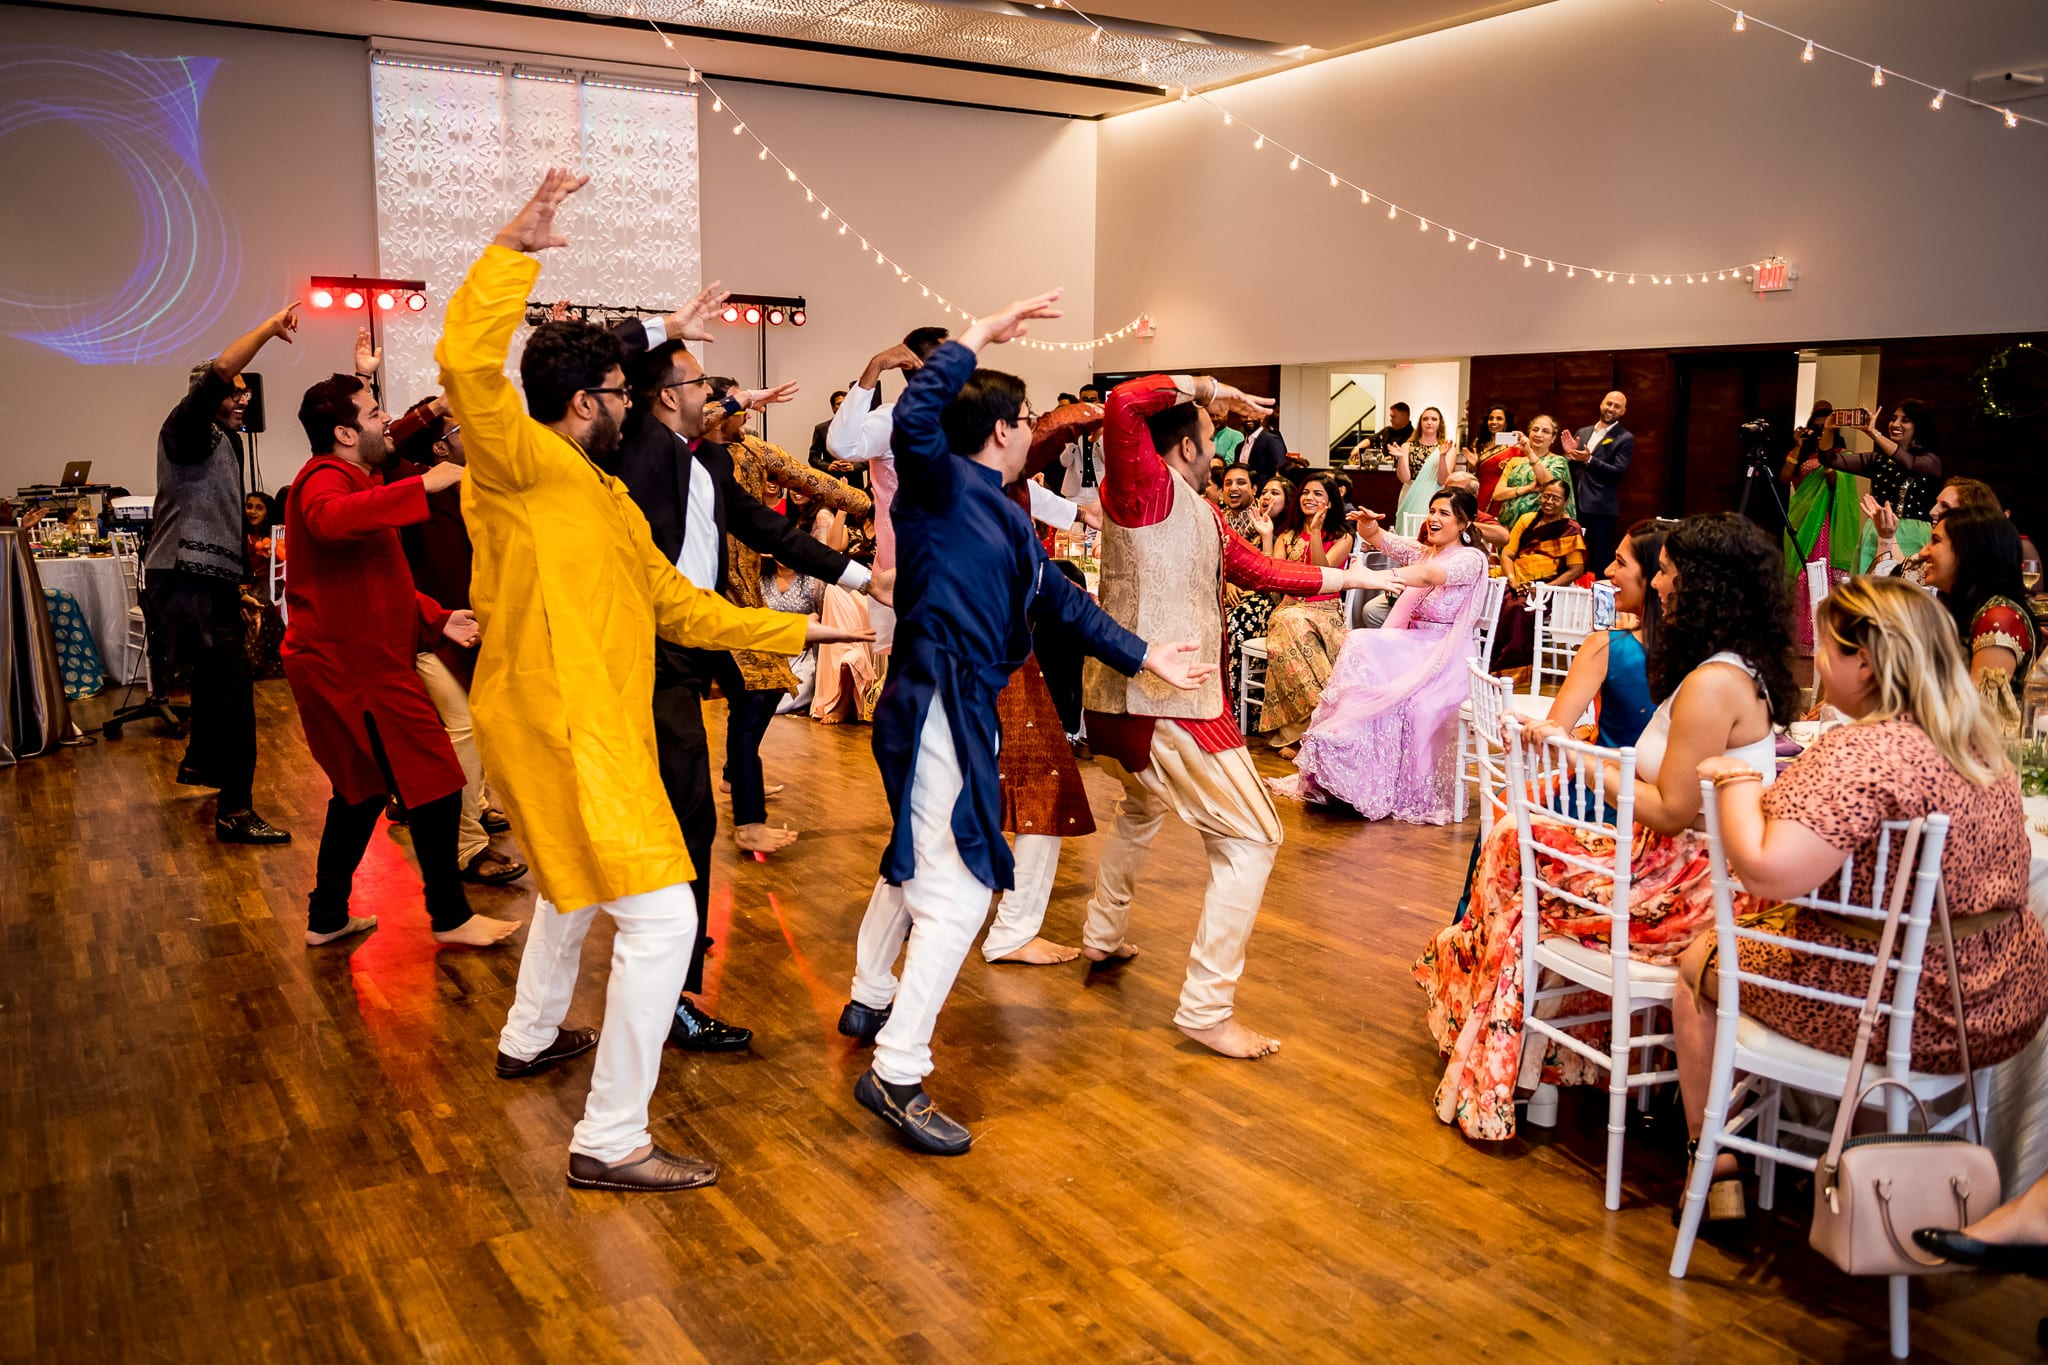 Bride reacted wildly to the groom and his groomsmen performing a choreographed dance at The Blaisdell during their wedding reception